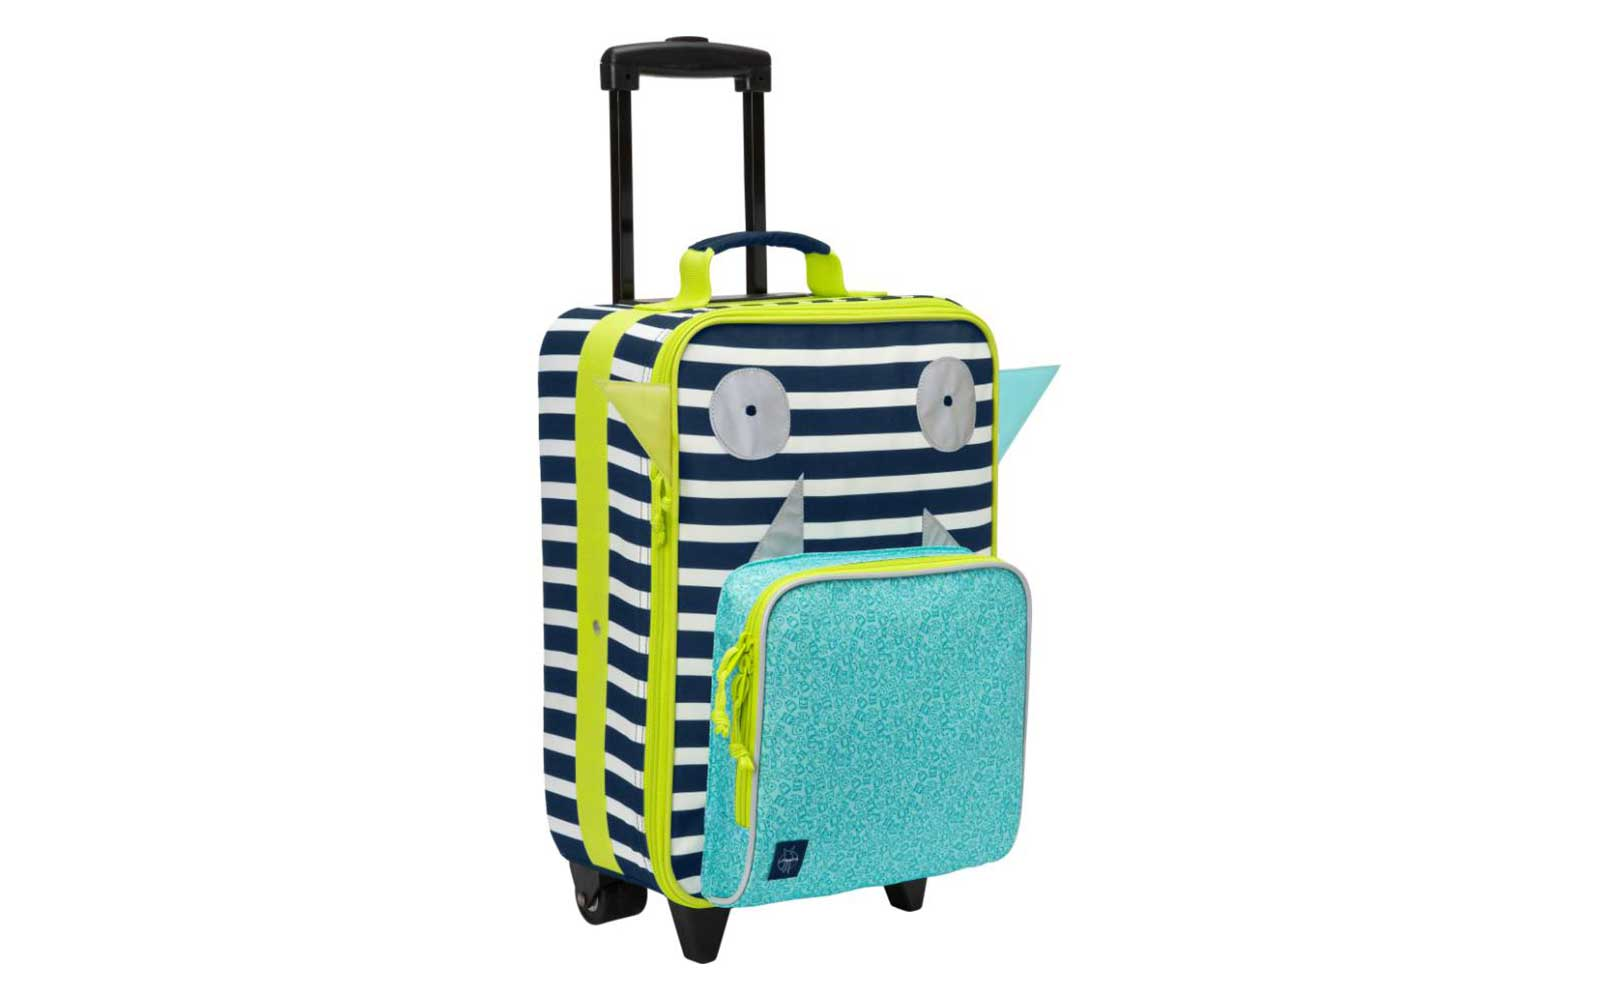 7f3d362e95c0 The Best Kids' Luggage for Family Vacation | Travel + Leisure